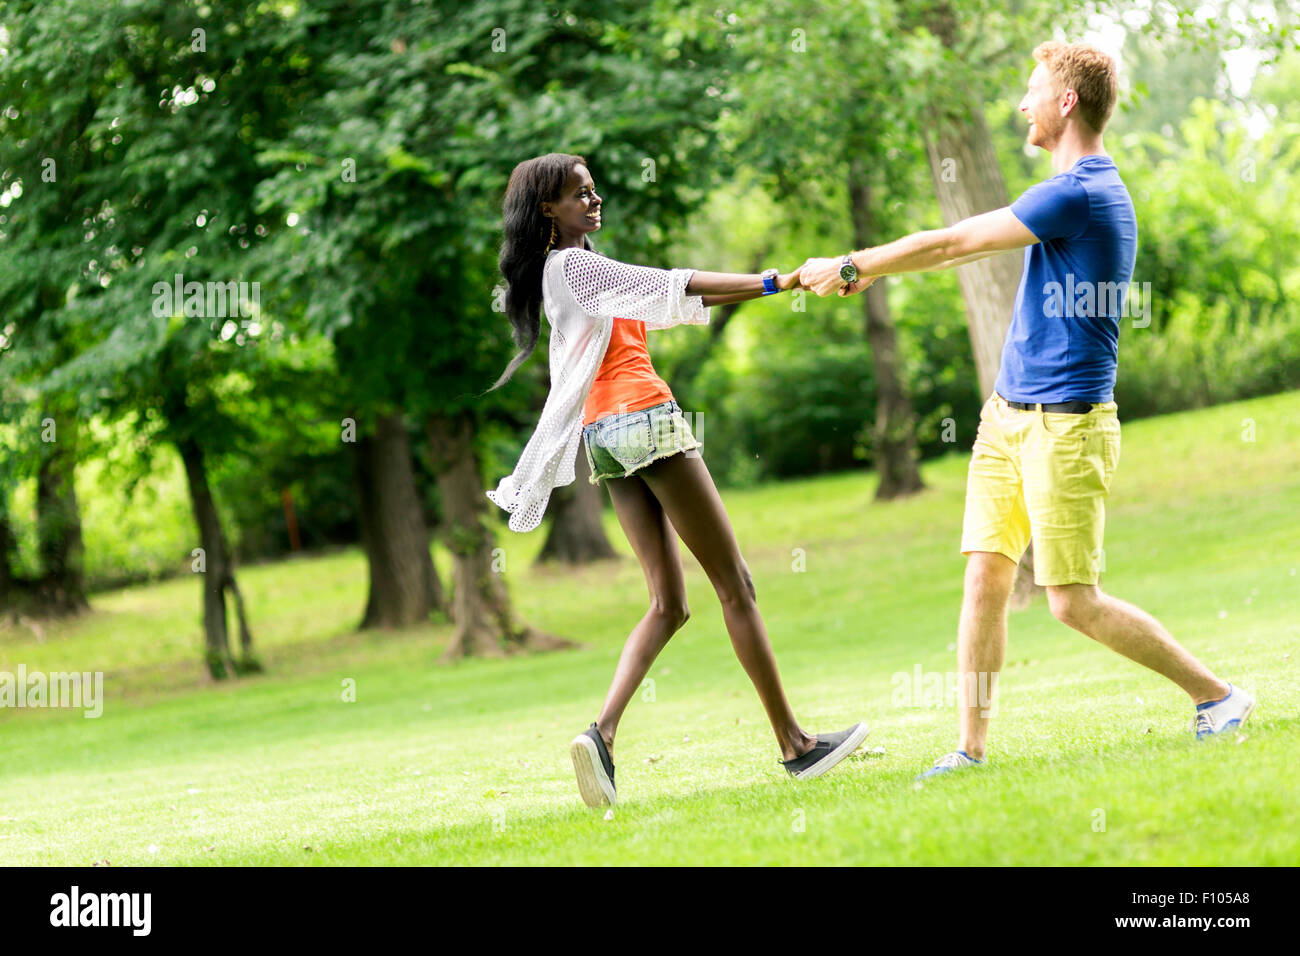 Beautiful couple dancing outdoors in a park displaying joy and love - Stock Image